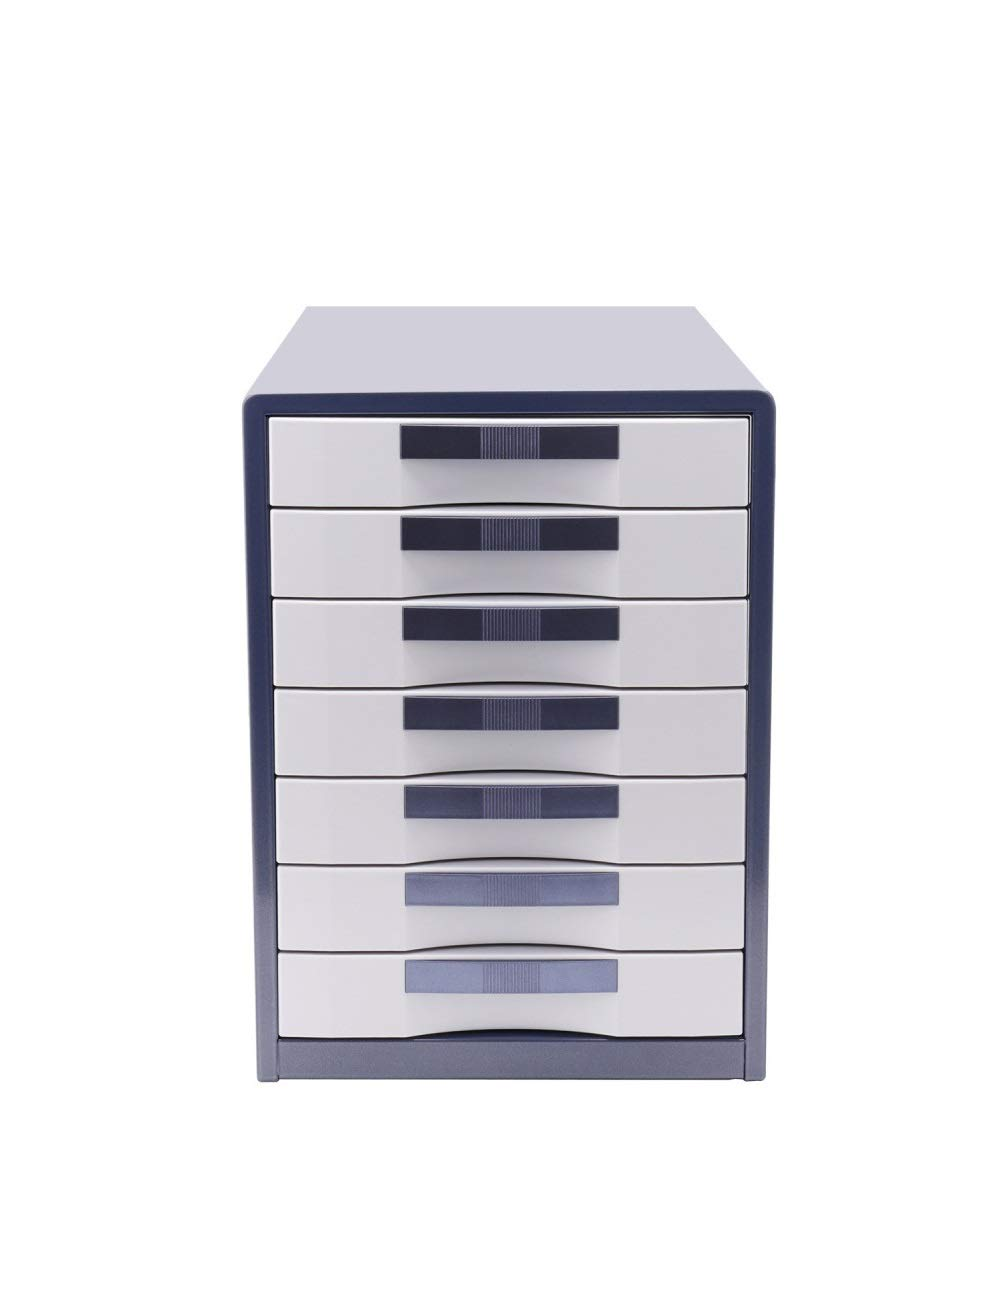 File Cabinet Desktop Cabinet Storage Organizer Organizer 7 Drawers 710x410x500 (cm) Plastic - Color: Blue, Brown Locking Filing cabinets